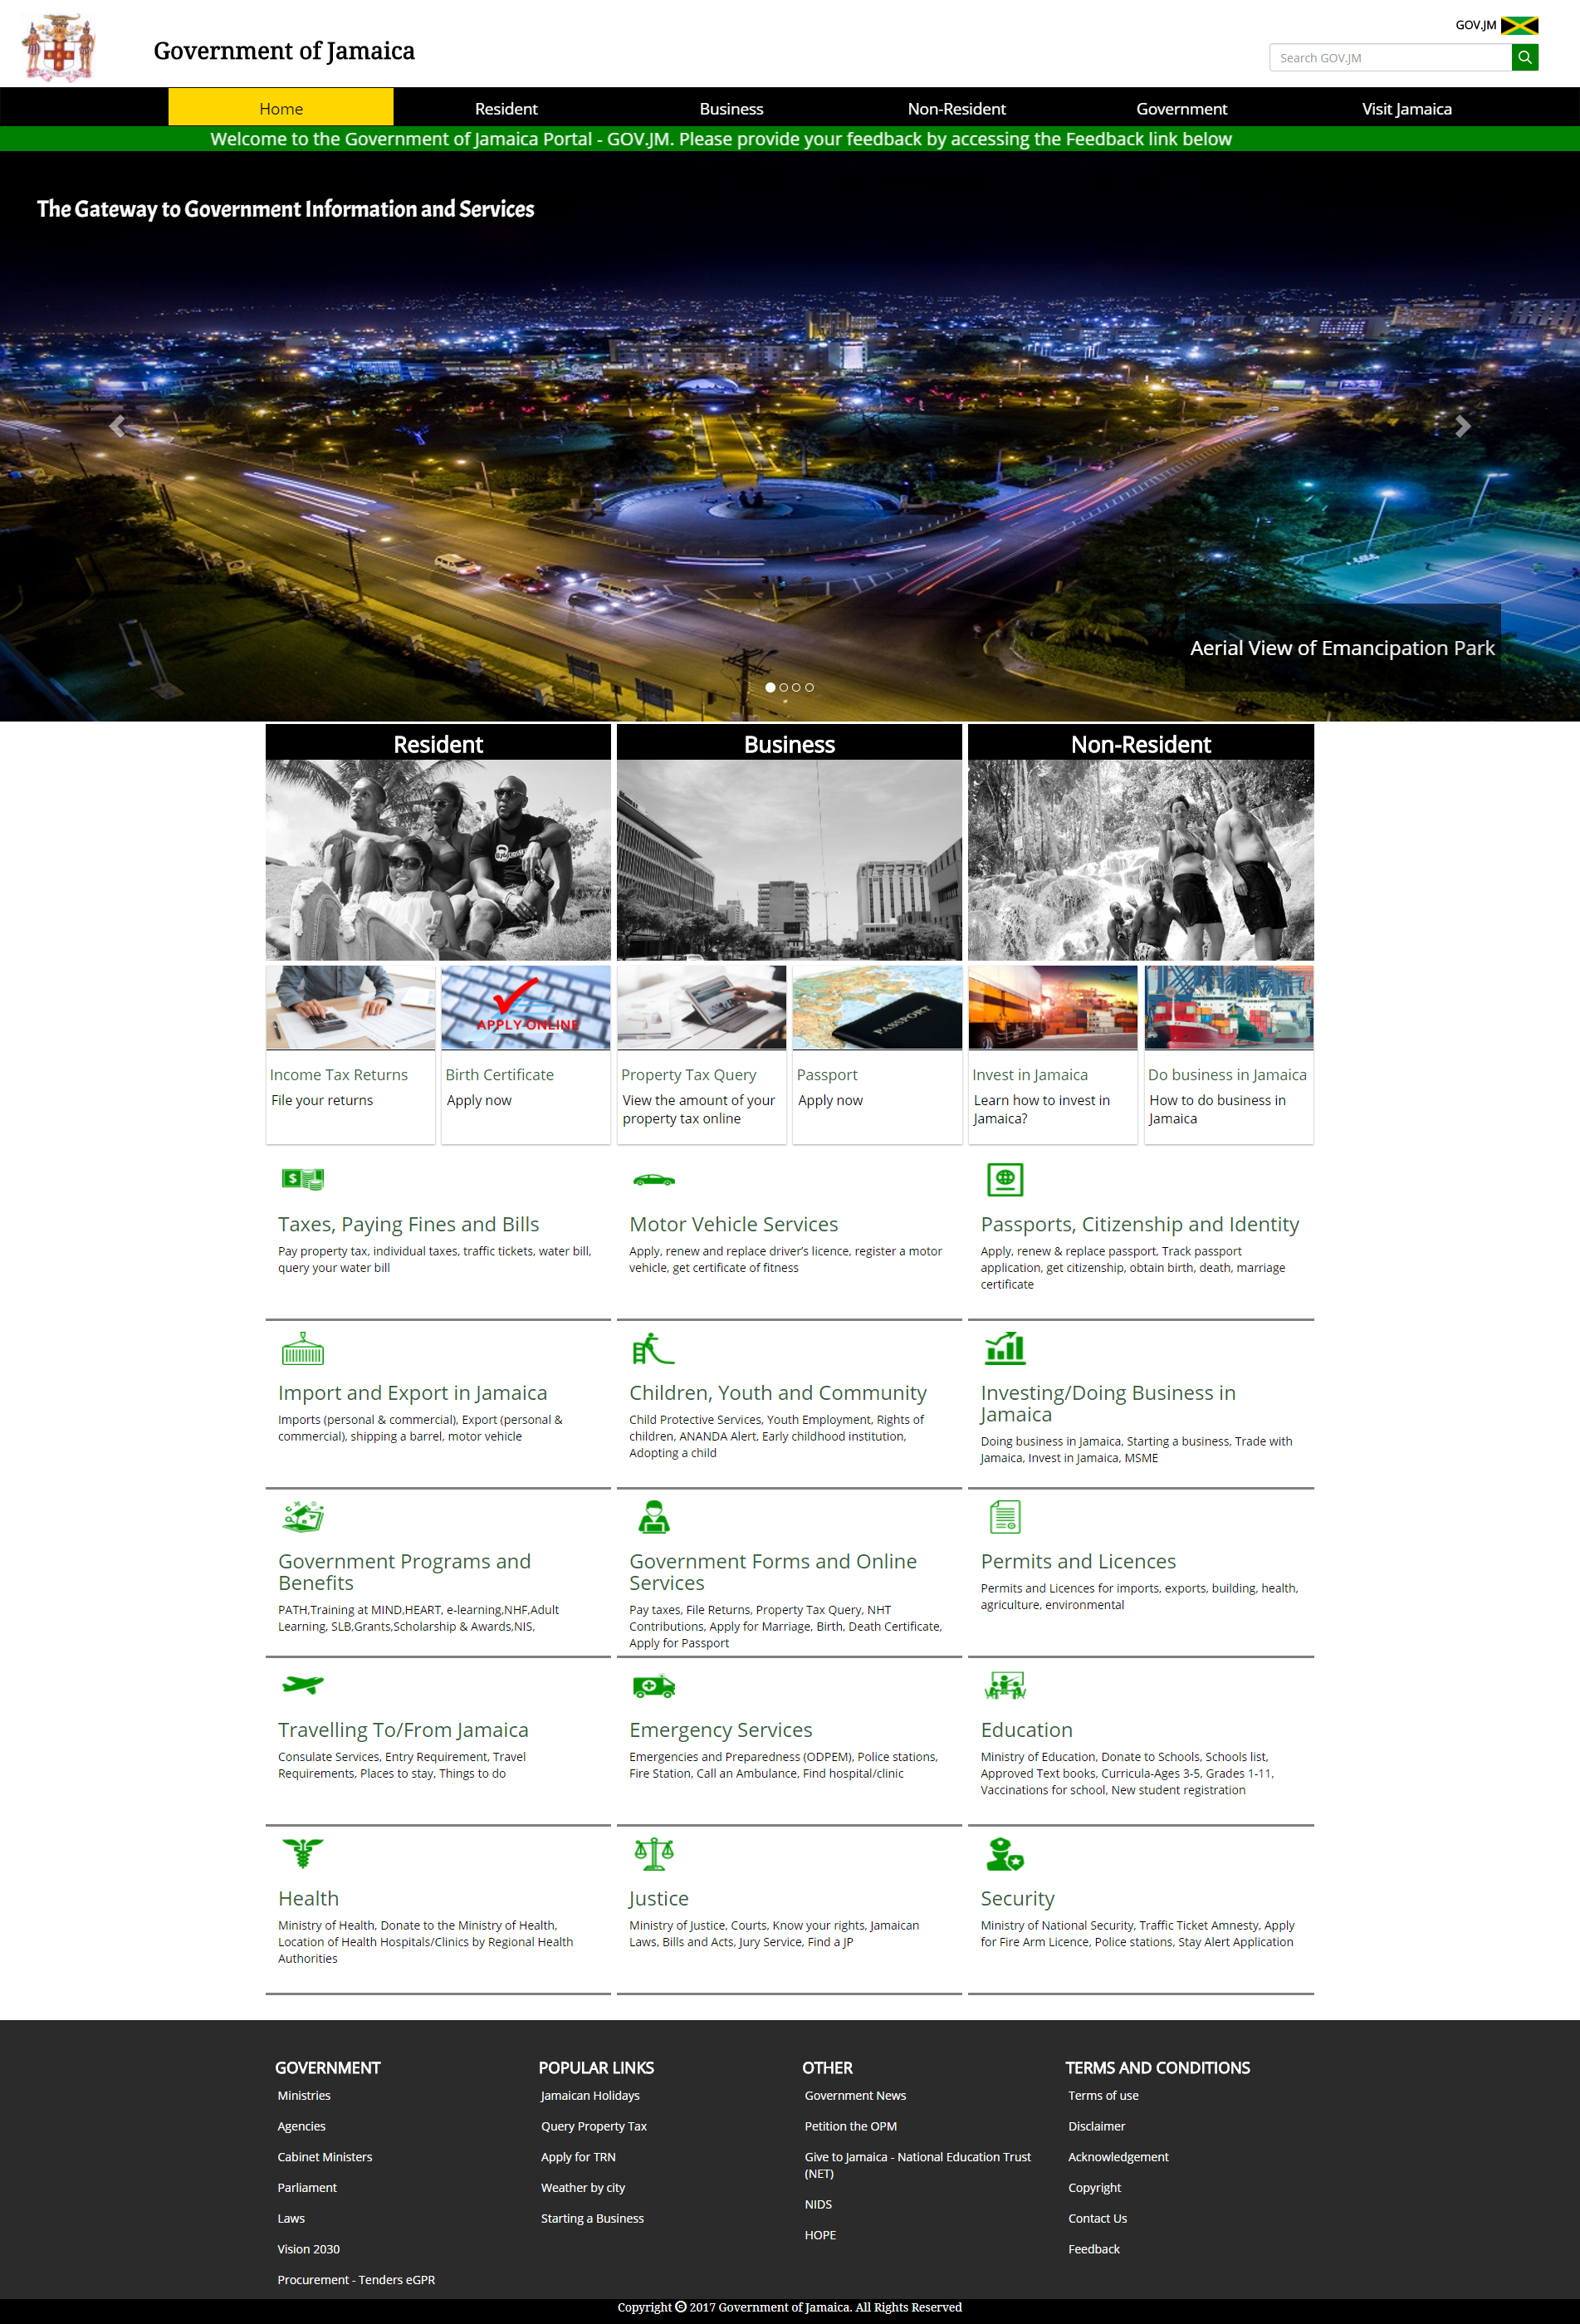 Homepage of GOV.JM